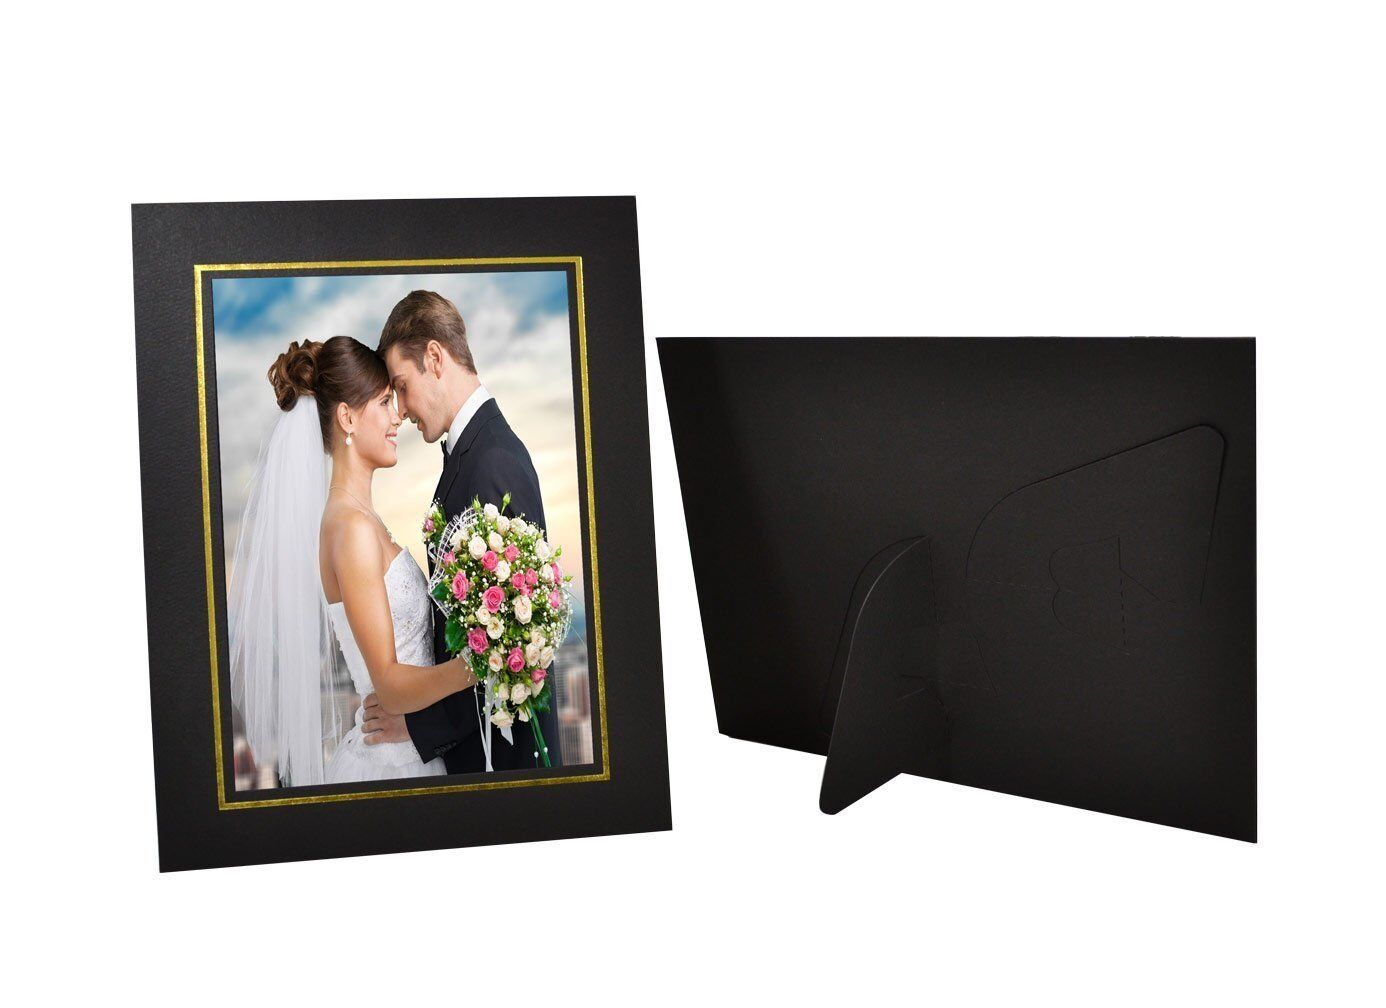 Cardboard picture frames 5x7 | Compare Prices at Nextag